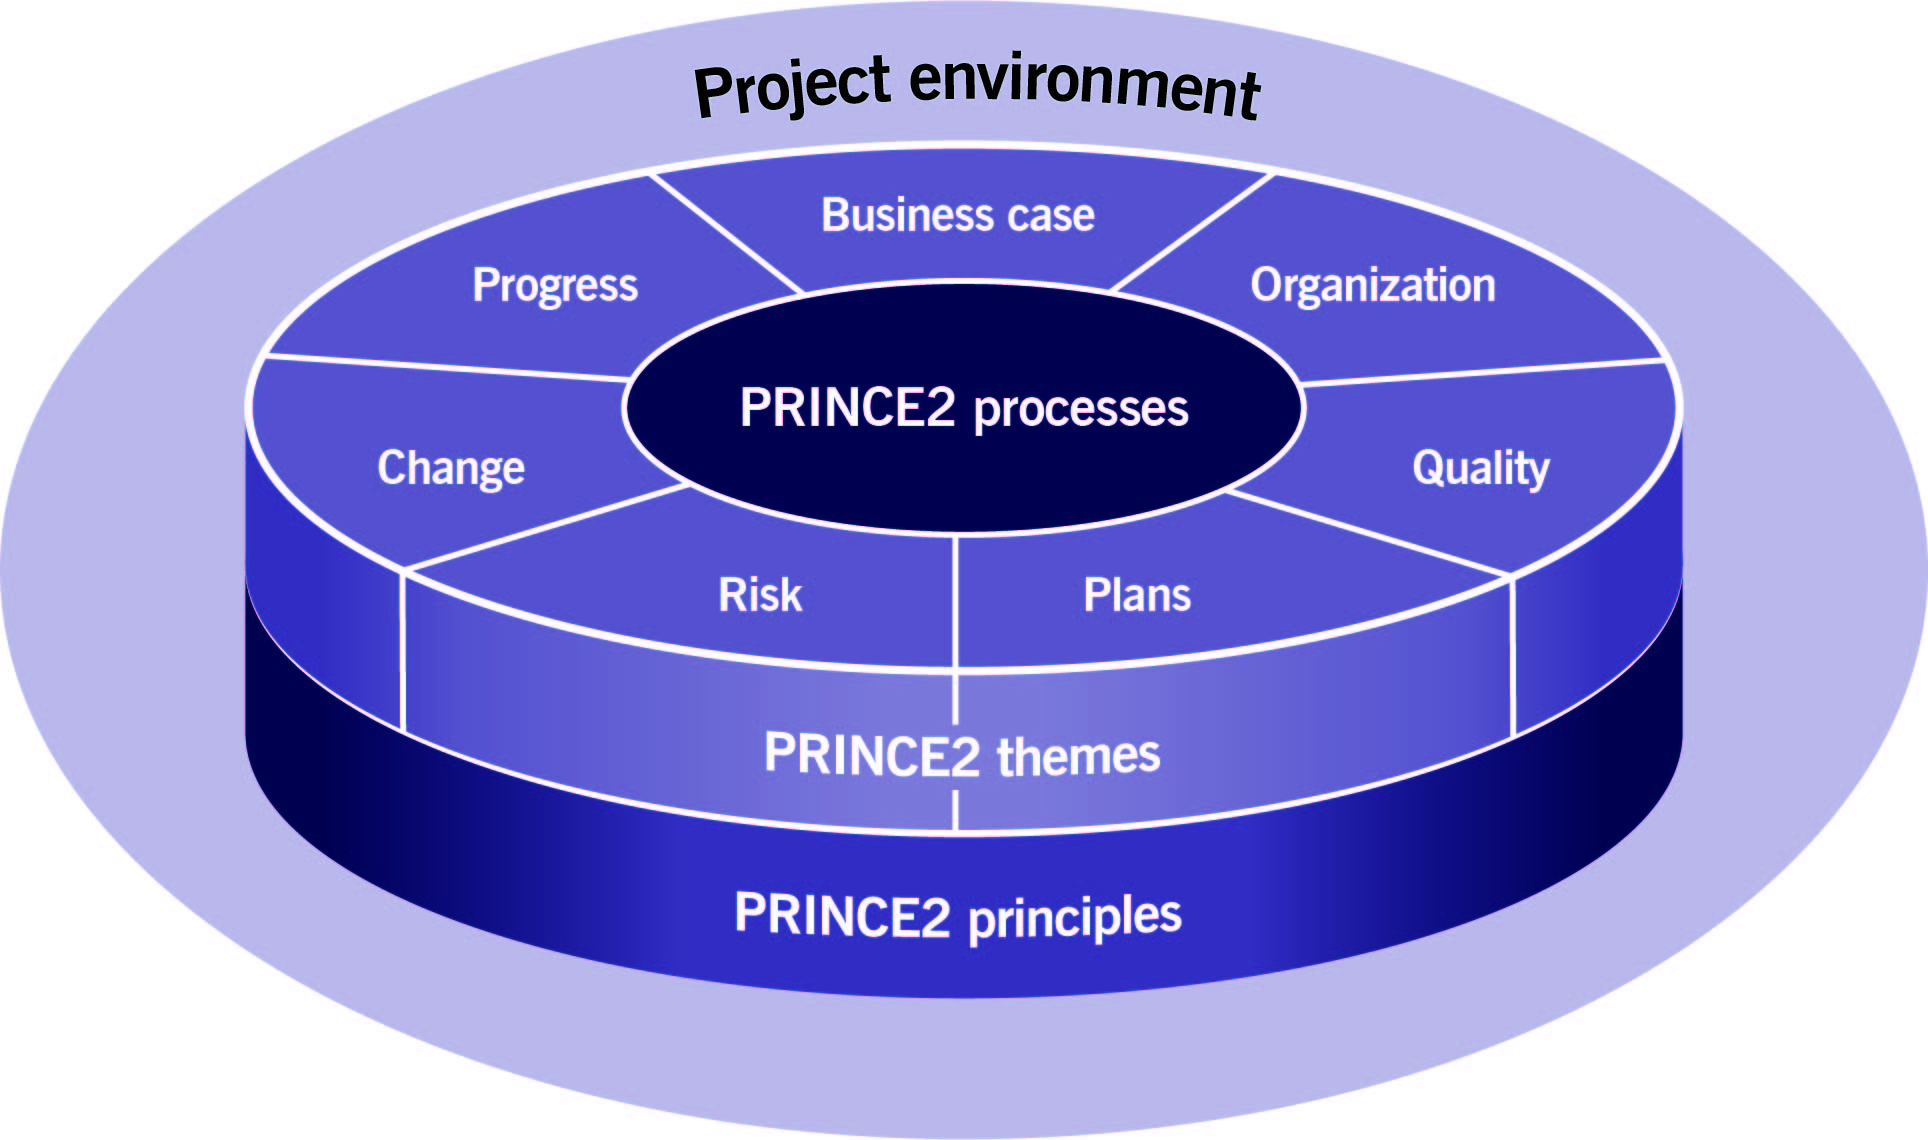 PRINCE2_Figure 1.1_The structure of PRINCE2 v2